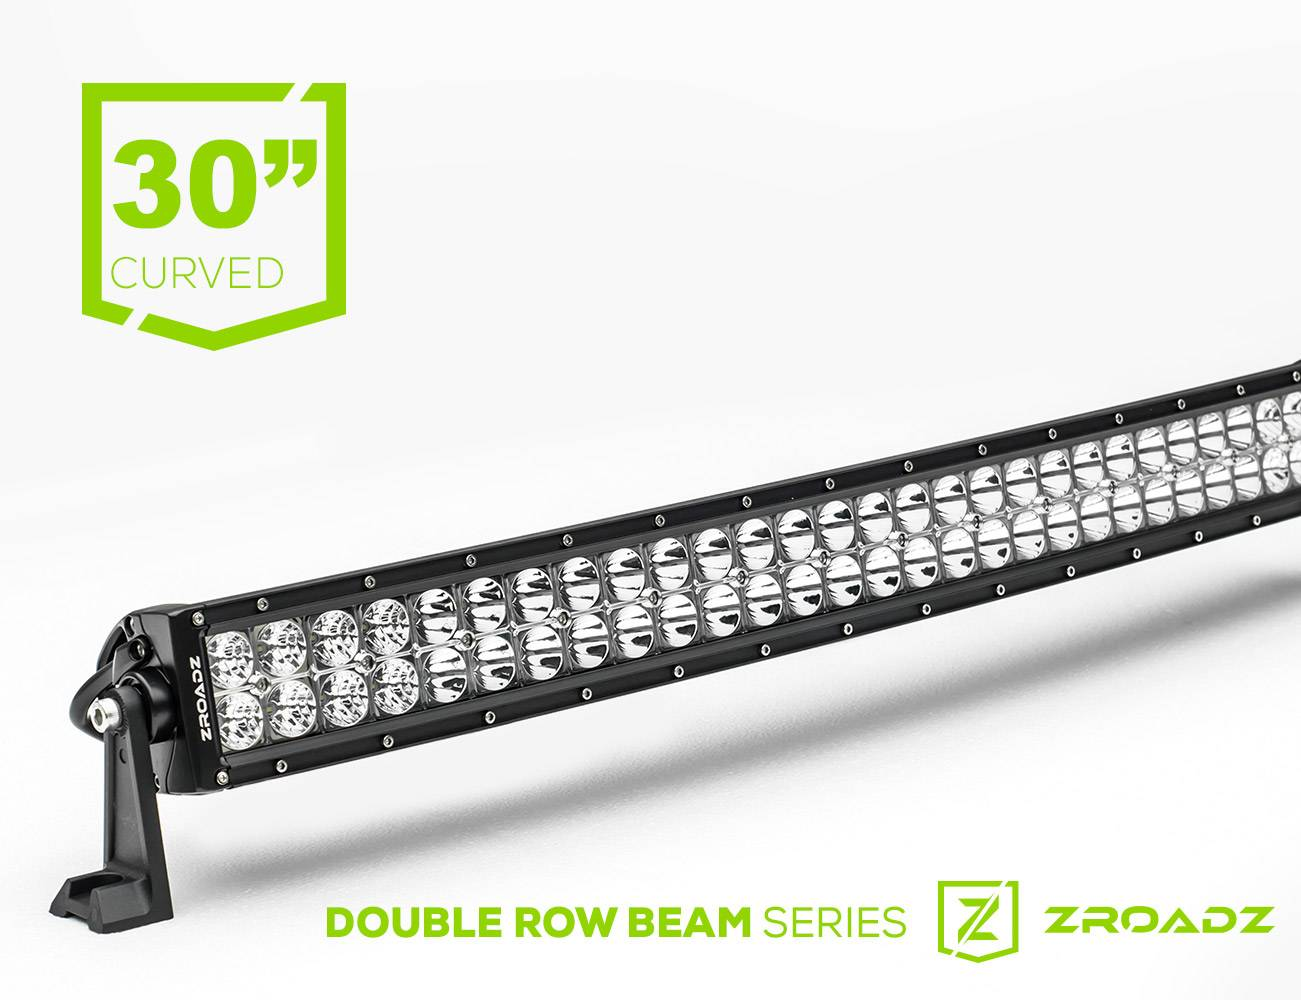 ZROADZ                                             - 30 Inch LED Curved Double Row Light Bar - PN #Z30CBC14W180